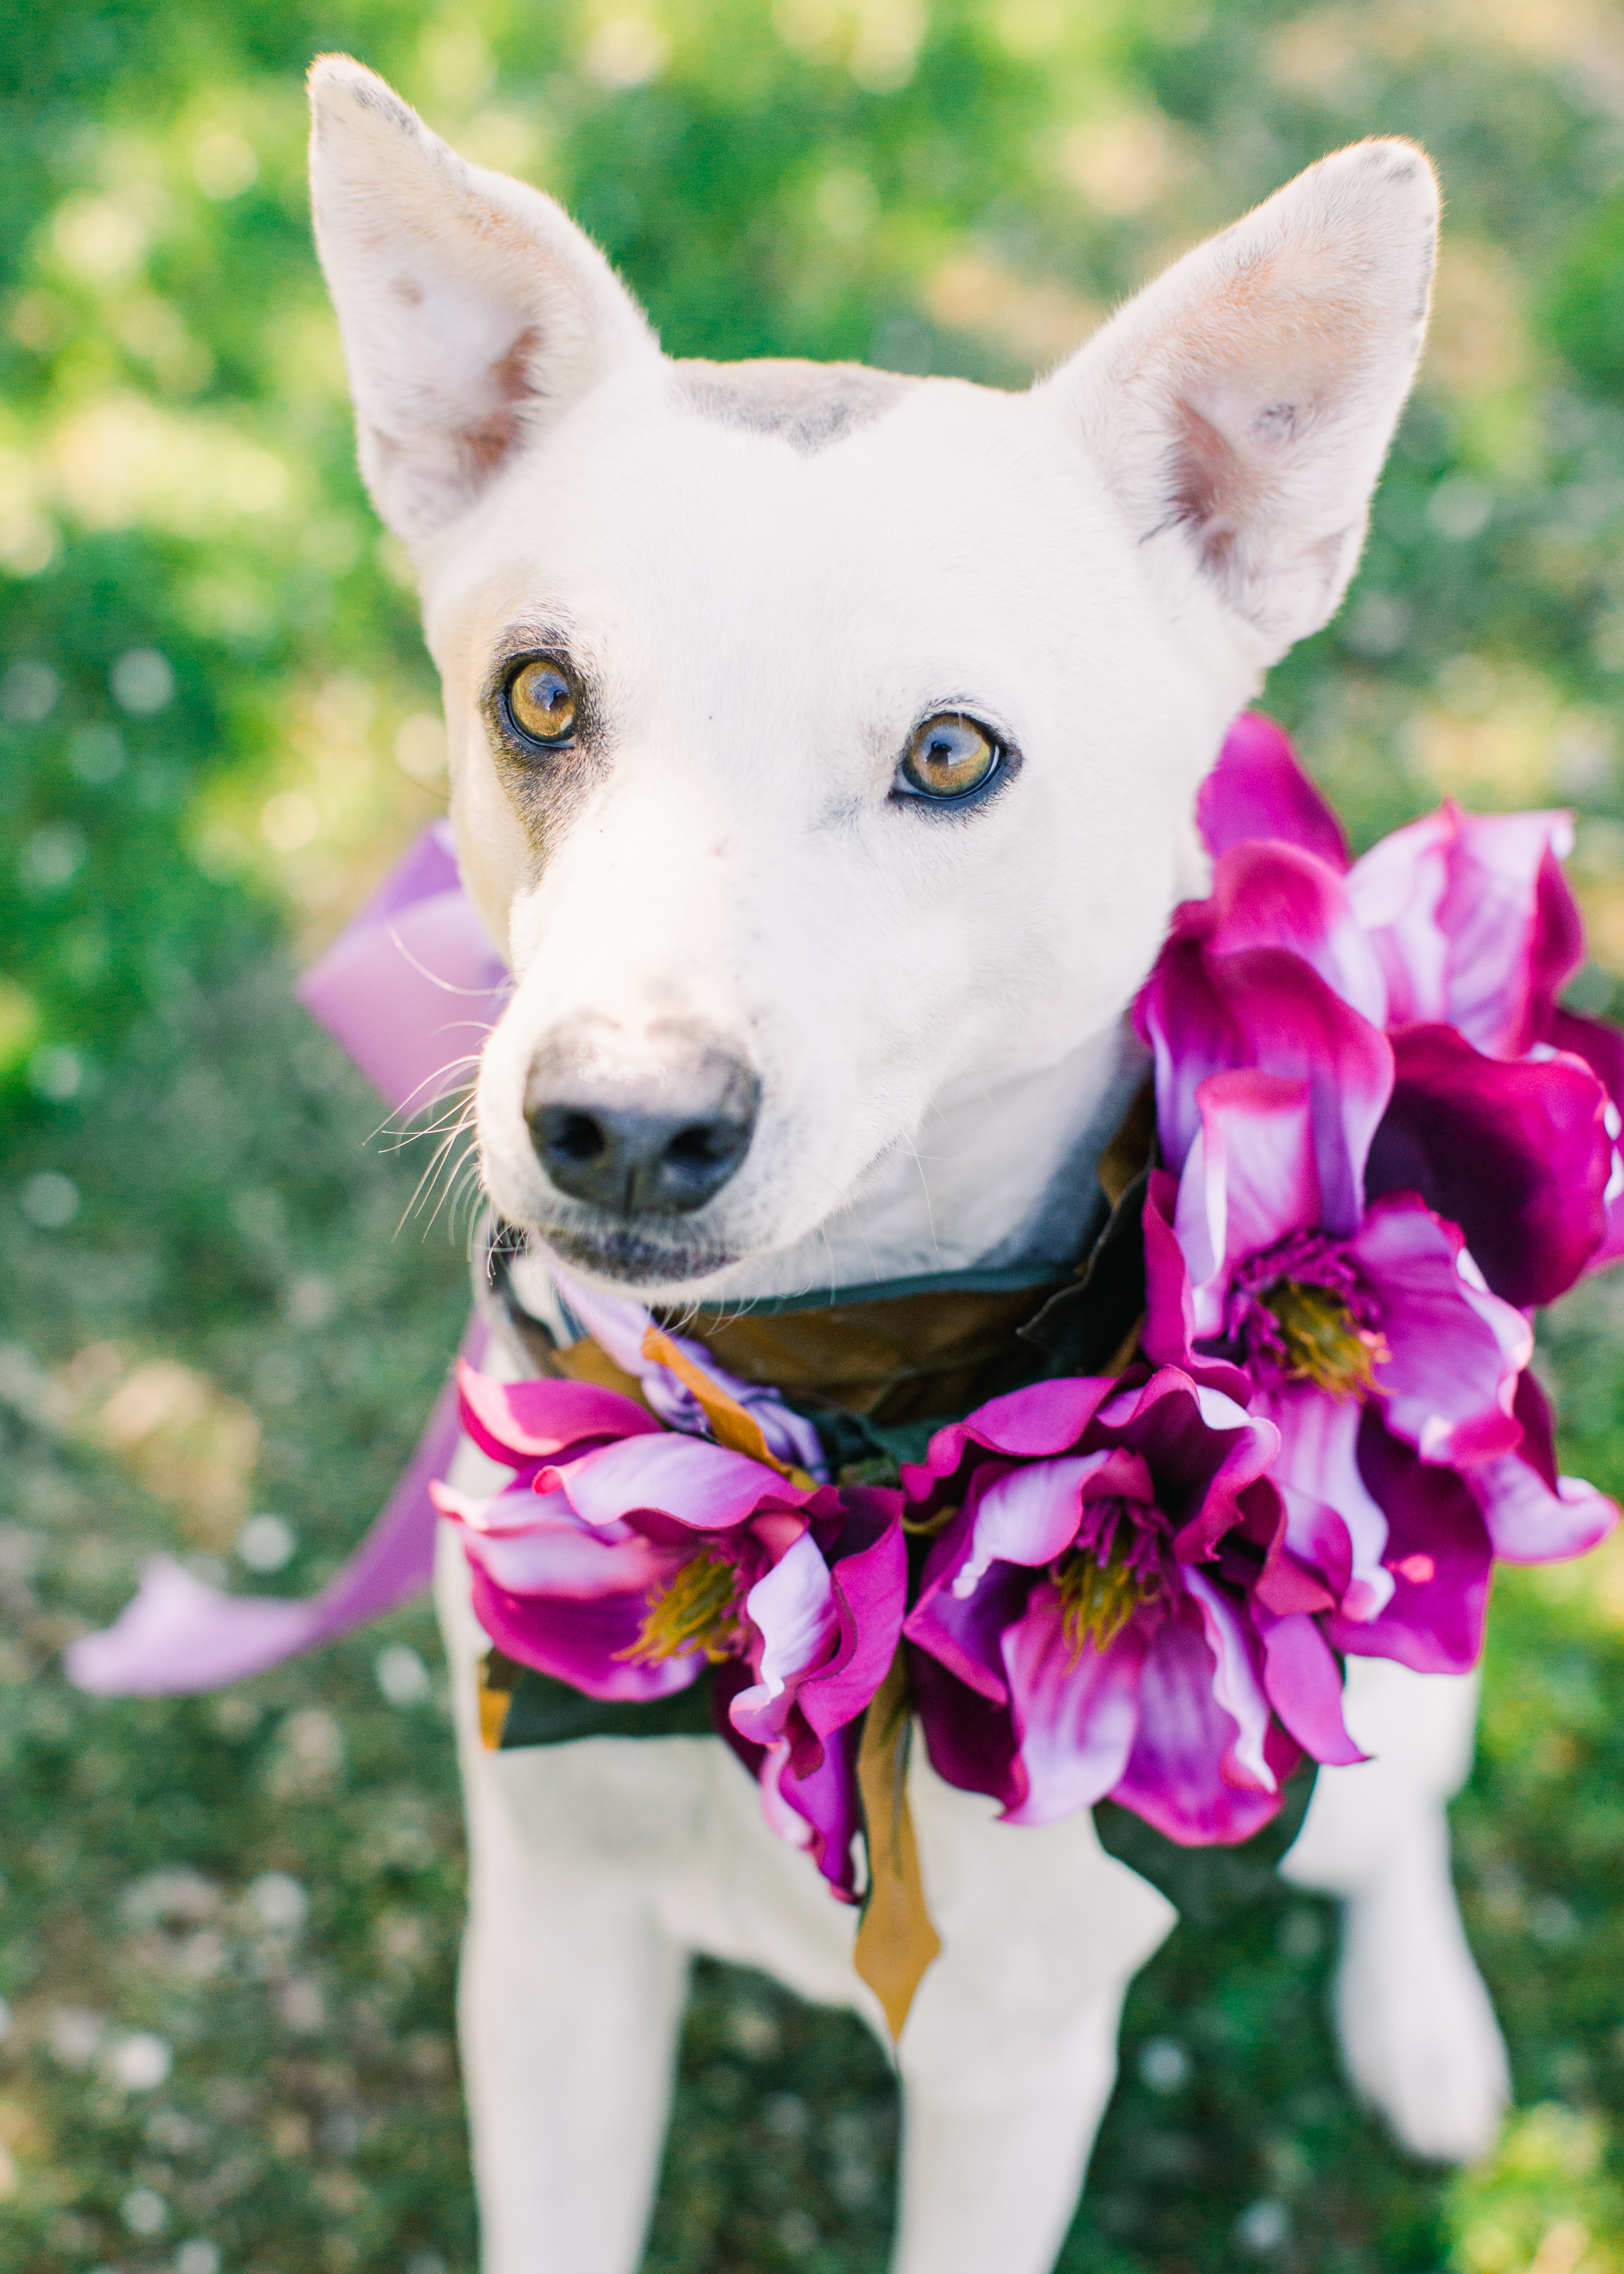 White pit bull cross with light brown eyes sitting in dappled light wearing a neck collar of magnolia blossoms.